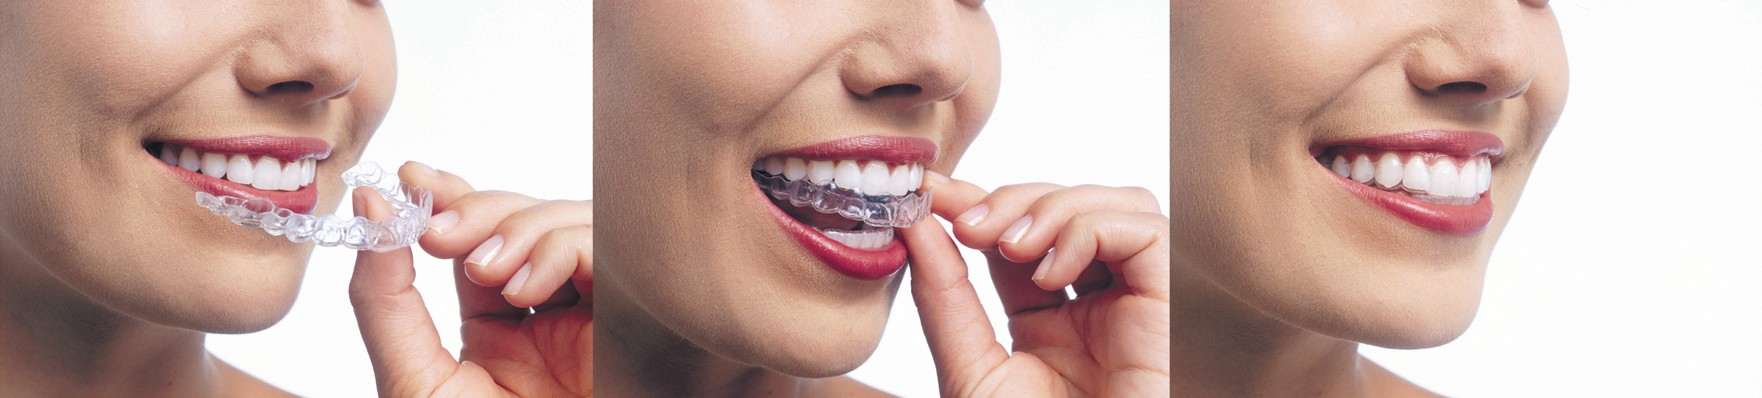 Invasiling Ortodoncia invisible en Dentalcare Clínicas